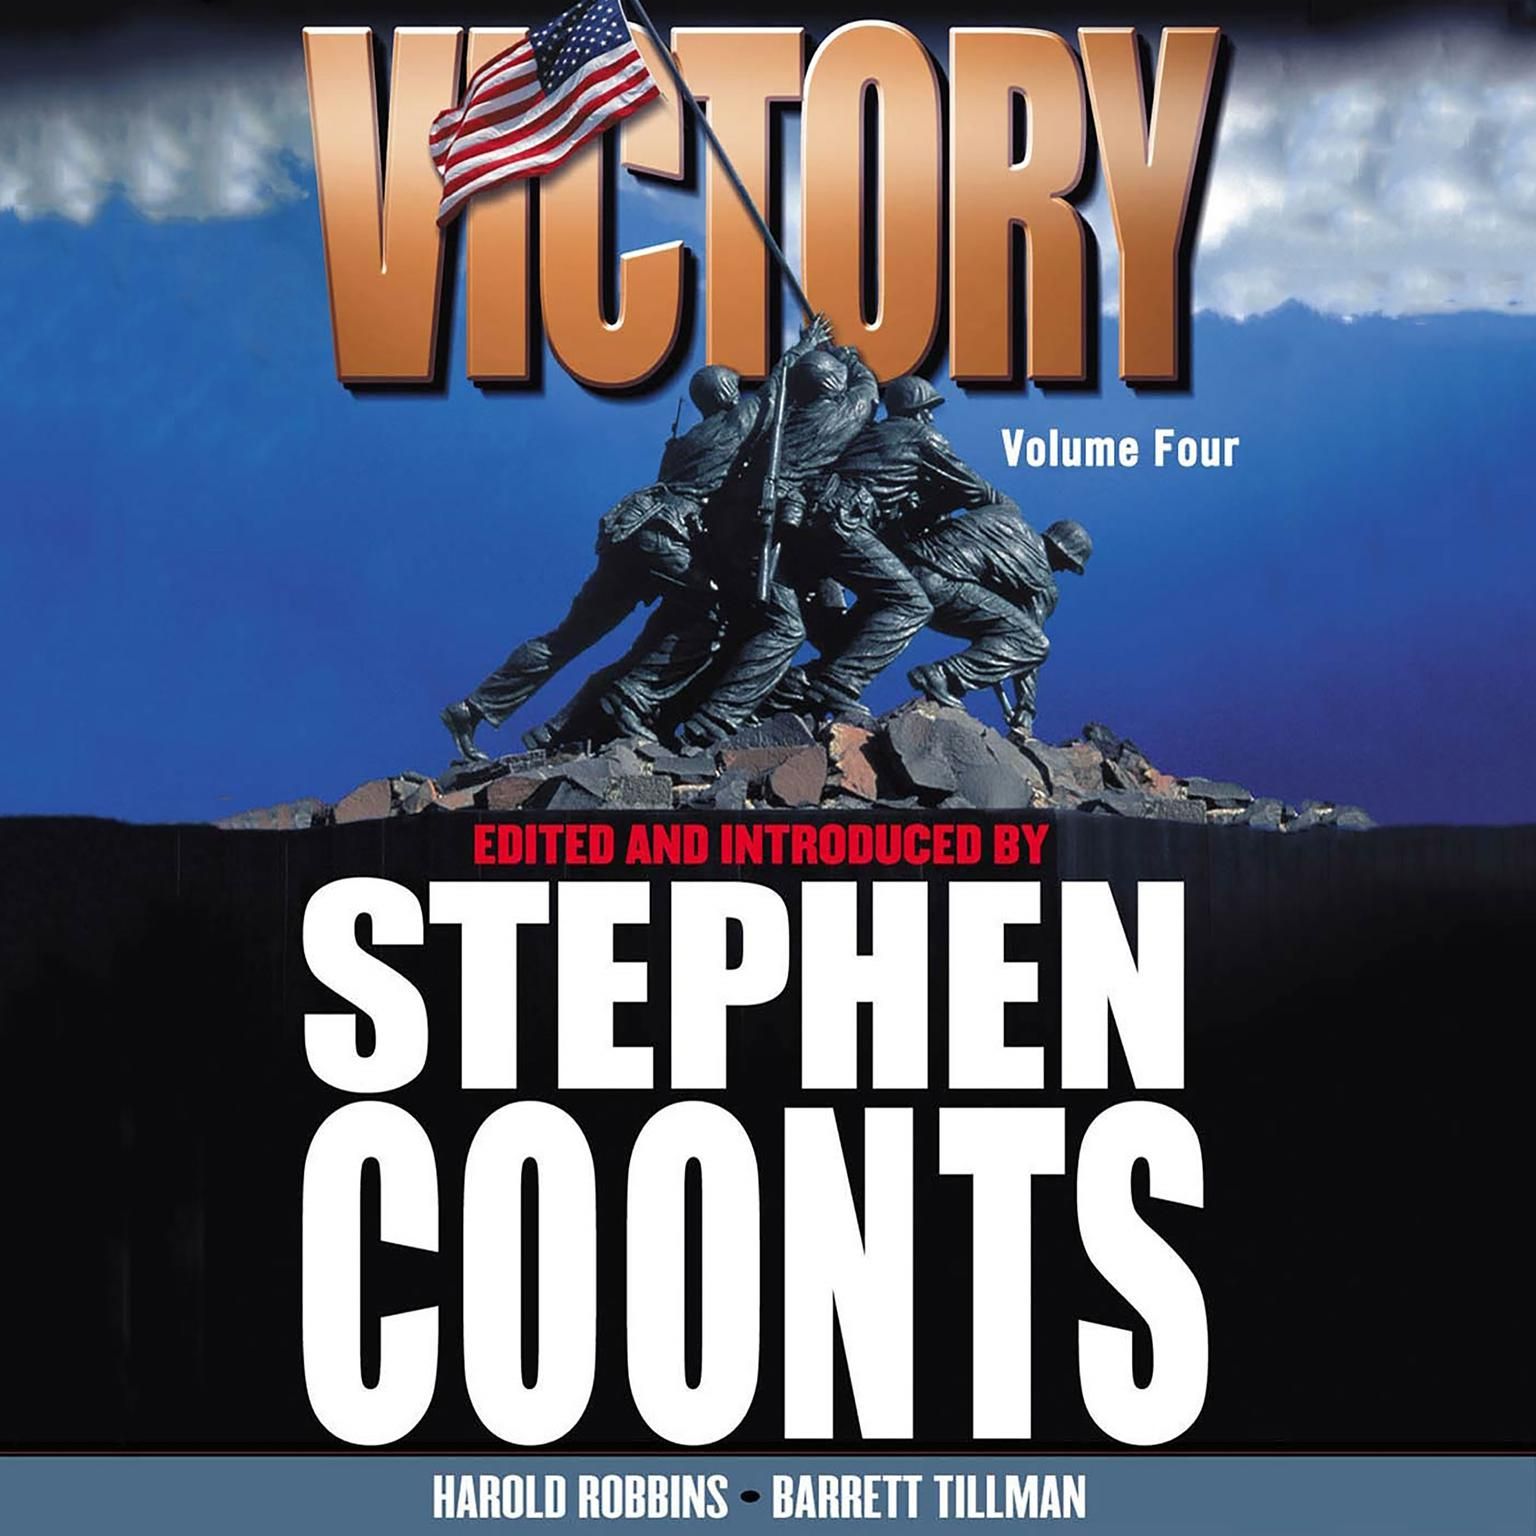 Printable Victory - Volume 4 Audiobook Cover Art